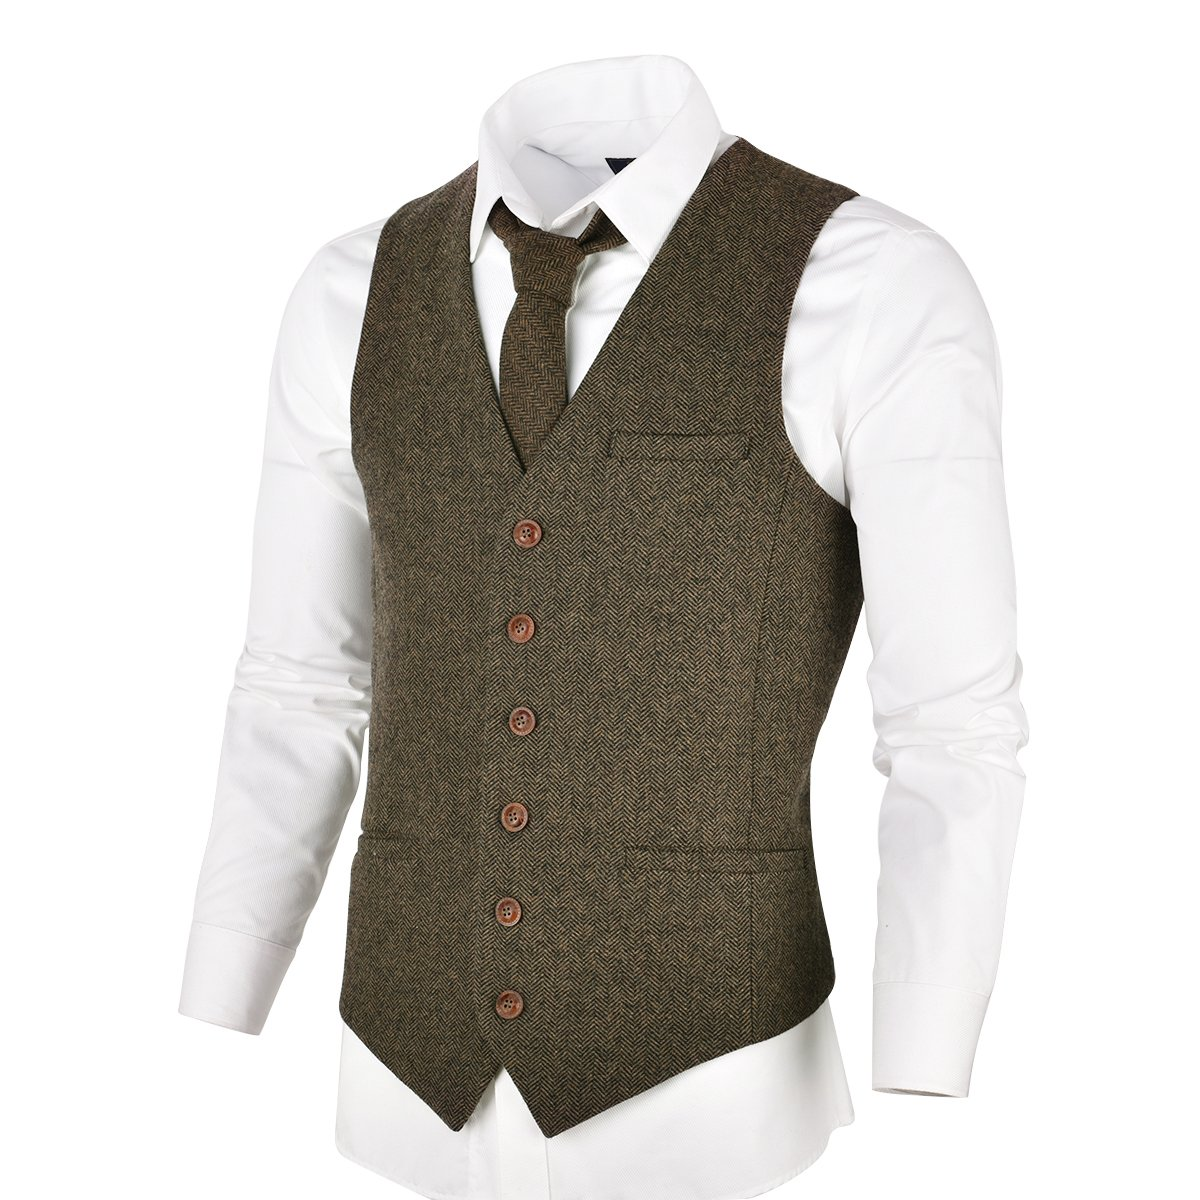 VOBOOM Men's Slim Fit Herringbone Tweed Suits Vest Premium Wool Blend Waistcoat (Khaki, M)